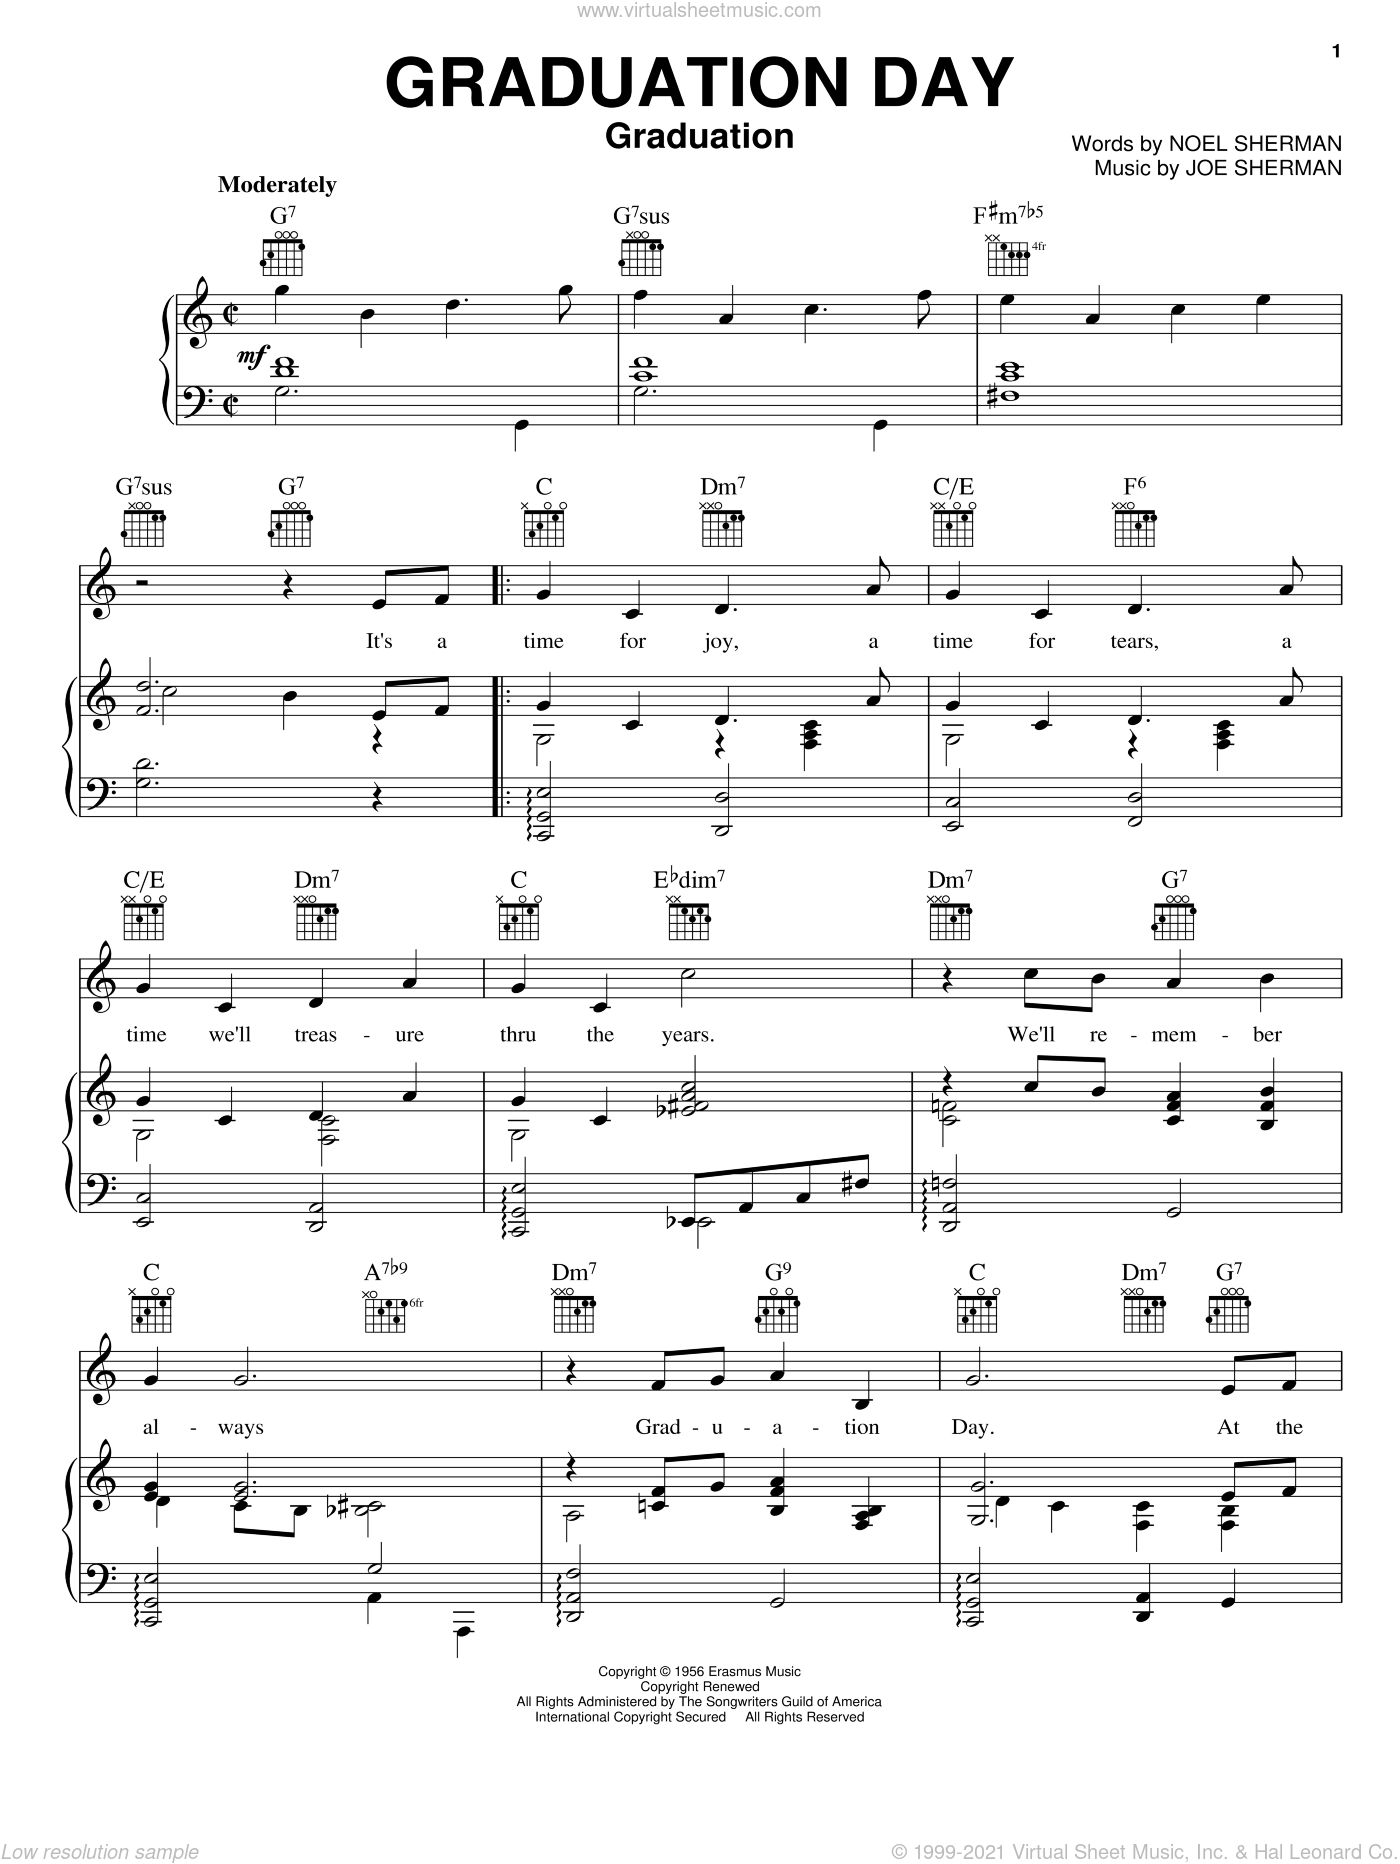 Graduation Day sheet music for voice, piano or guitar by Noel Sherman